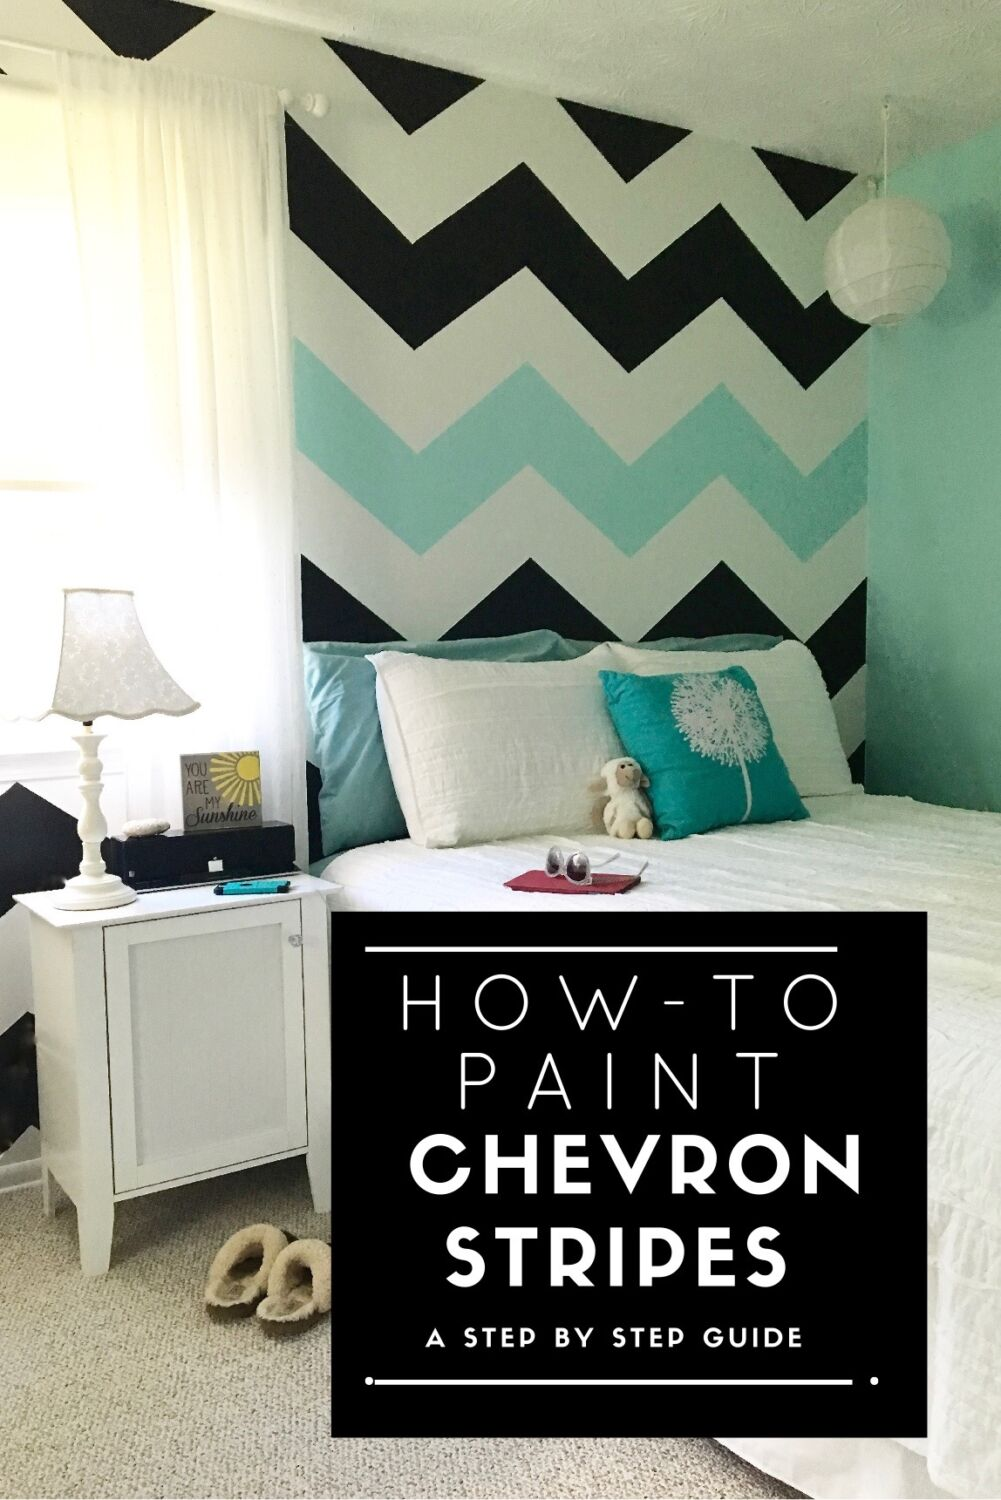 how to paint chevron stripes, teen girls room ideas, black and white stripes, how to paint stripes on walls,